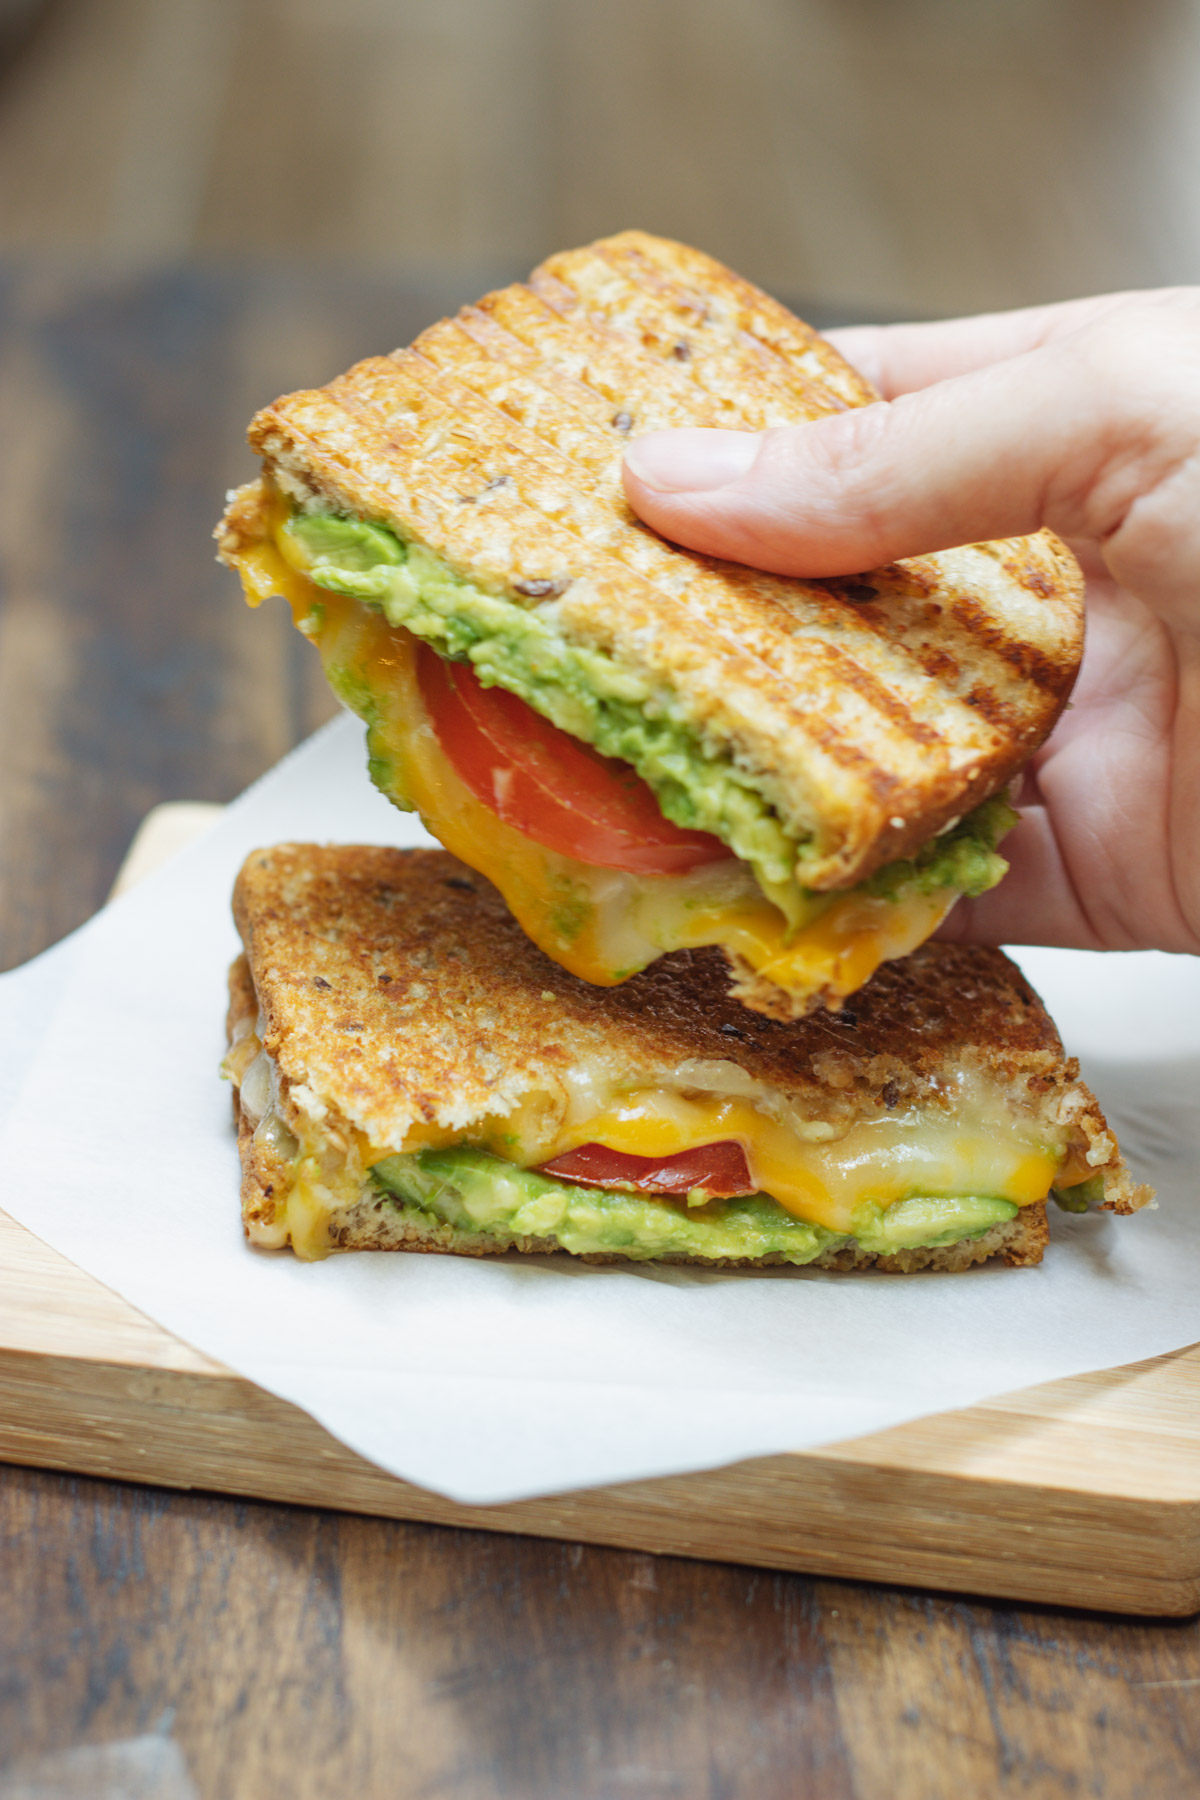 Two halves of a tomato and avocado grilled cheese sandwich on a wooden board with hand holding one half.